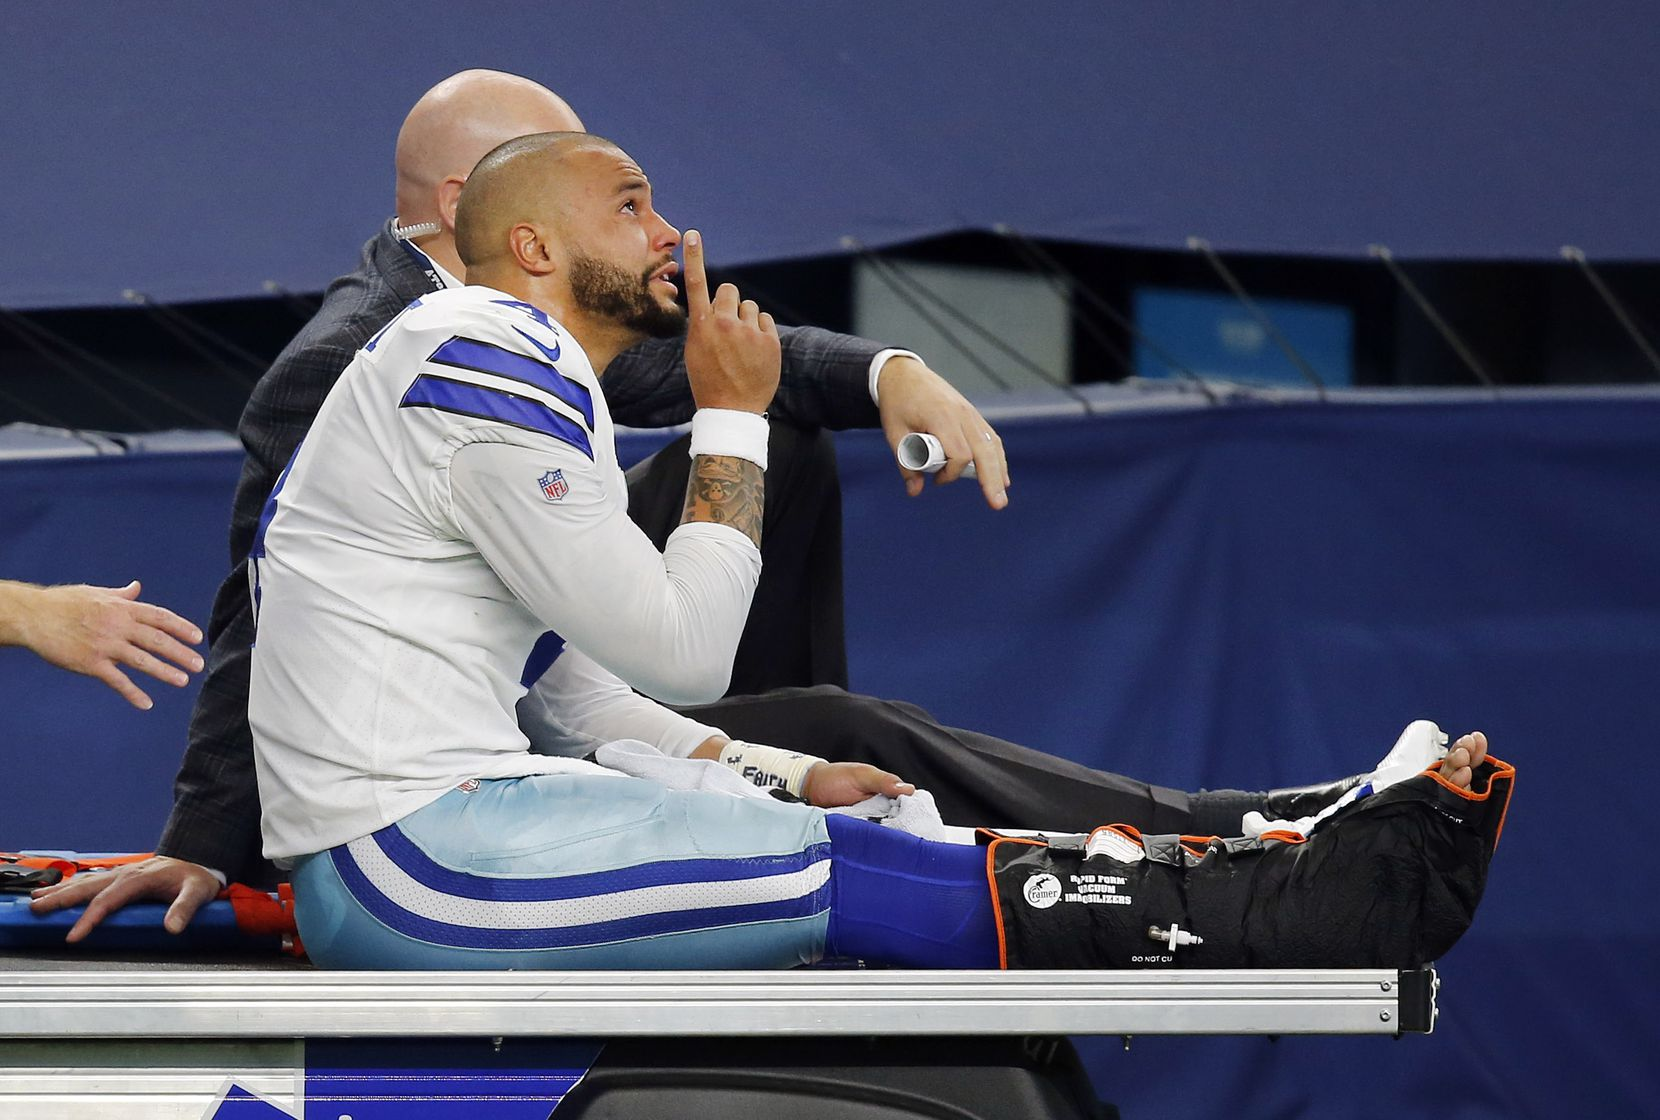 A tearful Dak Prescott pointed skyward as he was carted off the field after his injury at AT&T Stadium. He had surgery that night and is expected to be out four to six months as he rehabs and prepares for next season.